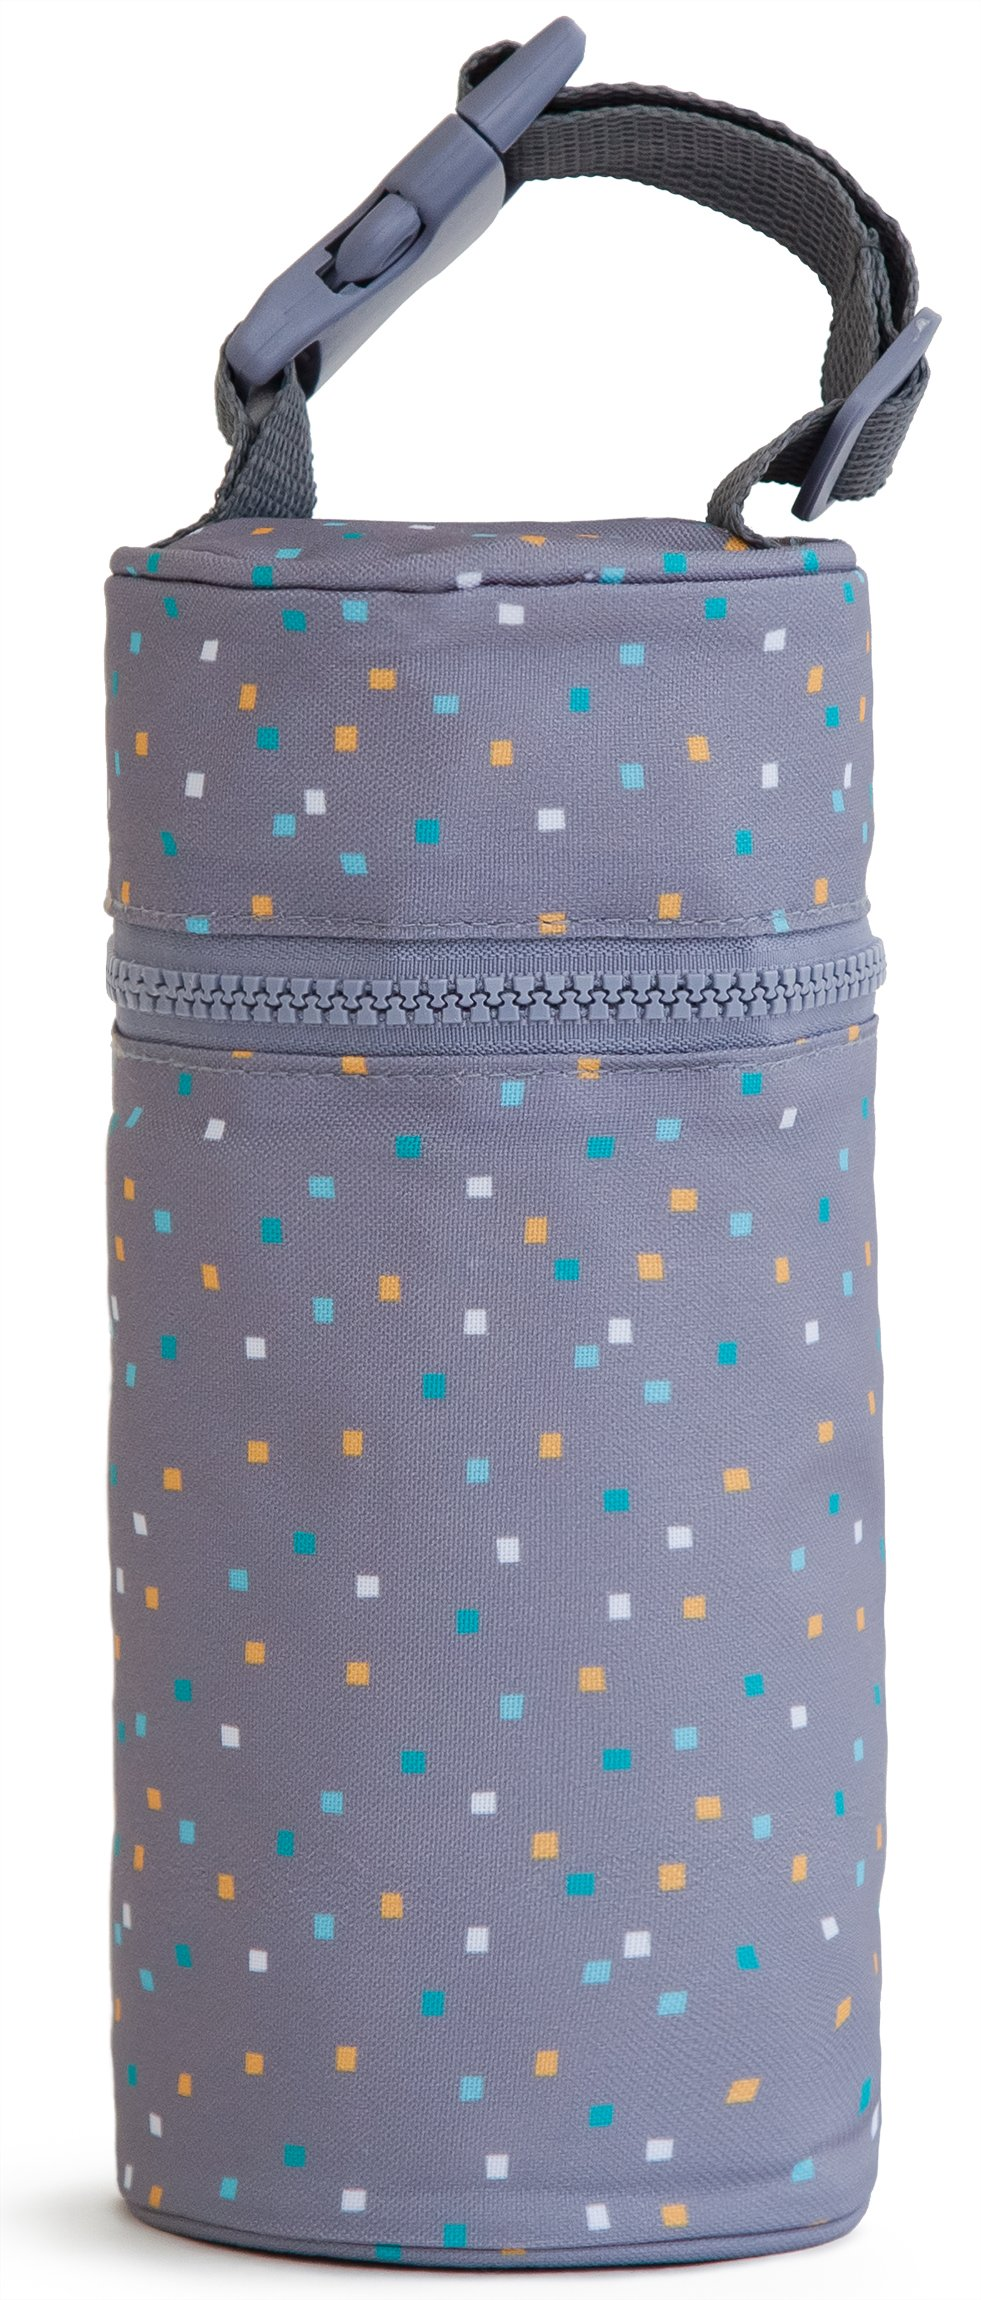 Kenley Insulated Single Baby Bottle Bag - Warmer or Cooler - Travel Carrier, Holder, Tote, Portable Breastmilk Storage - Fits Tall 8oz 9oz Milk Bottles by Kenley